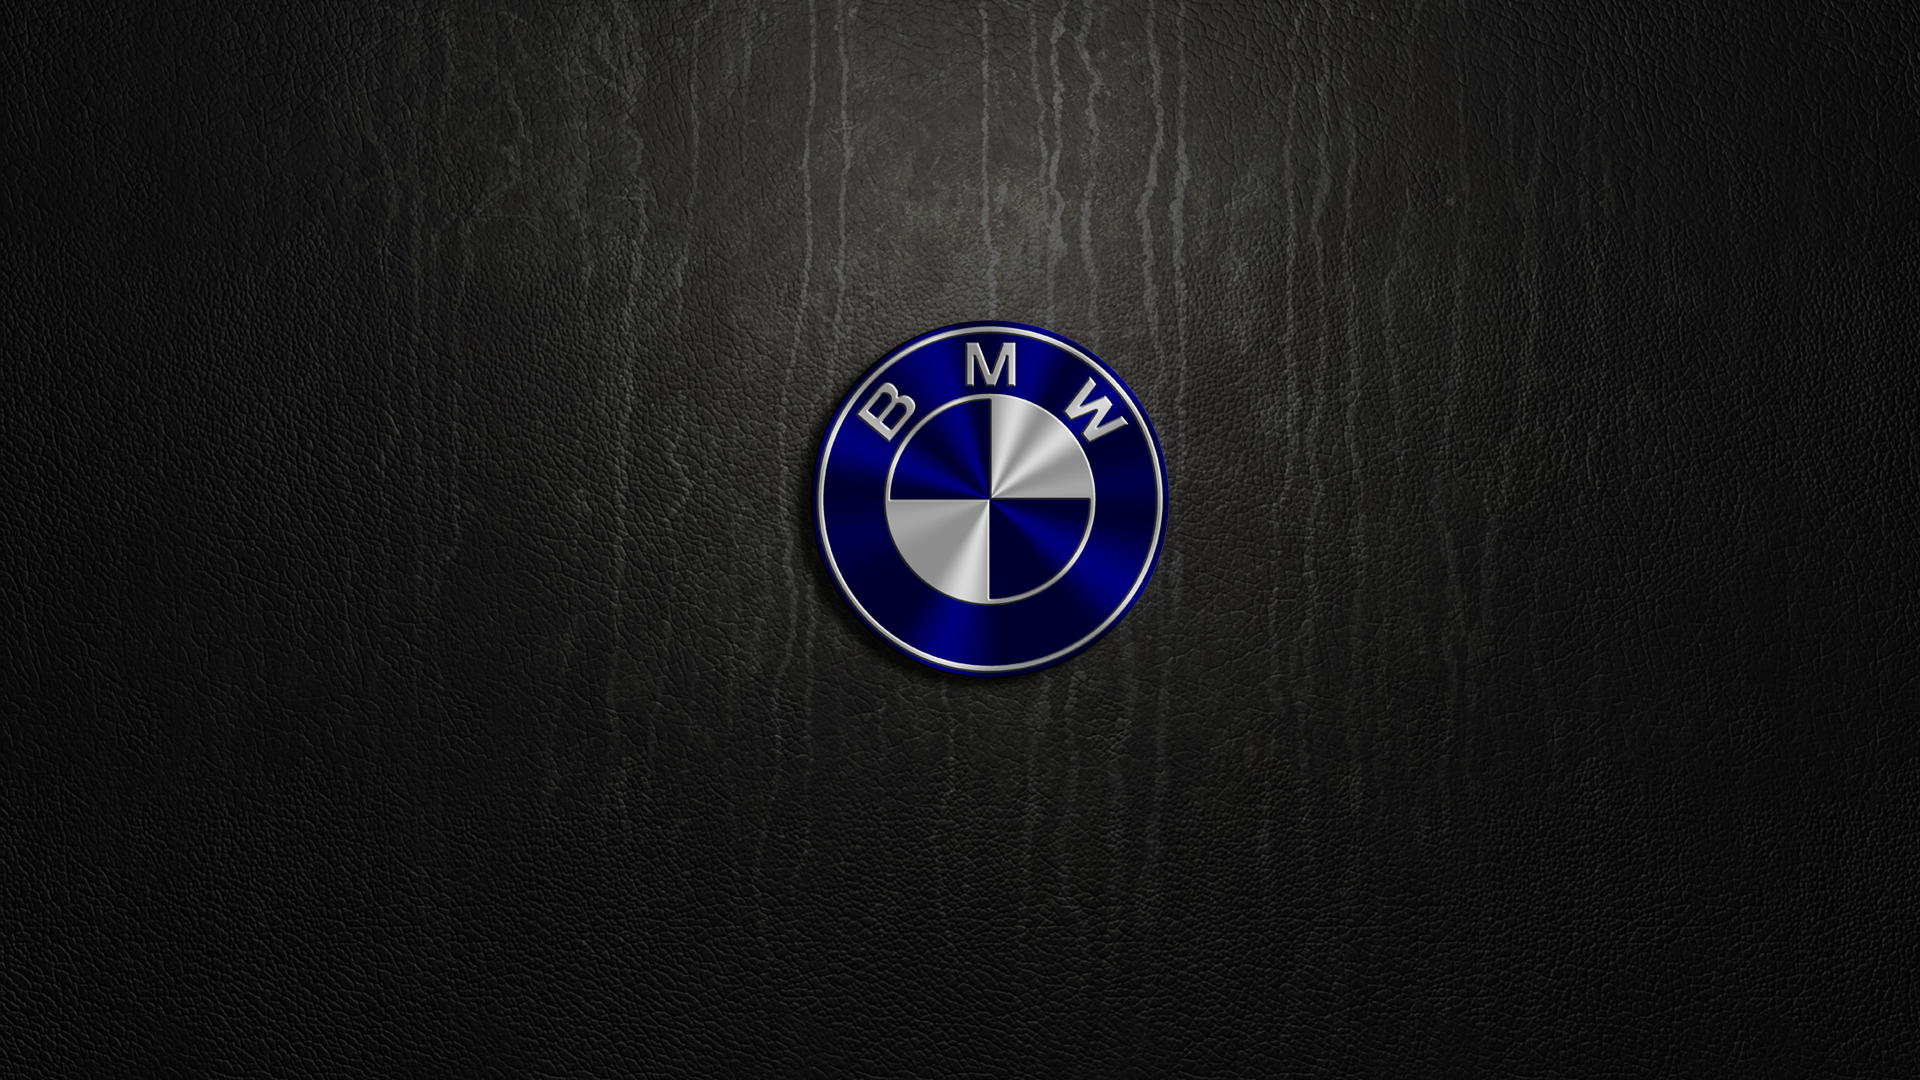 bmw black logo computer wallpaper 368